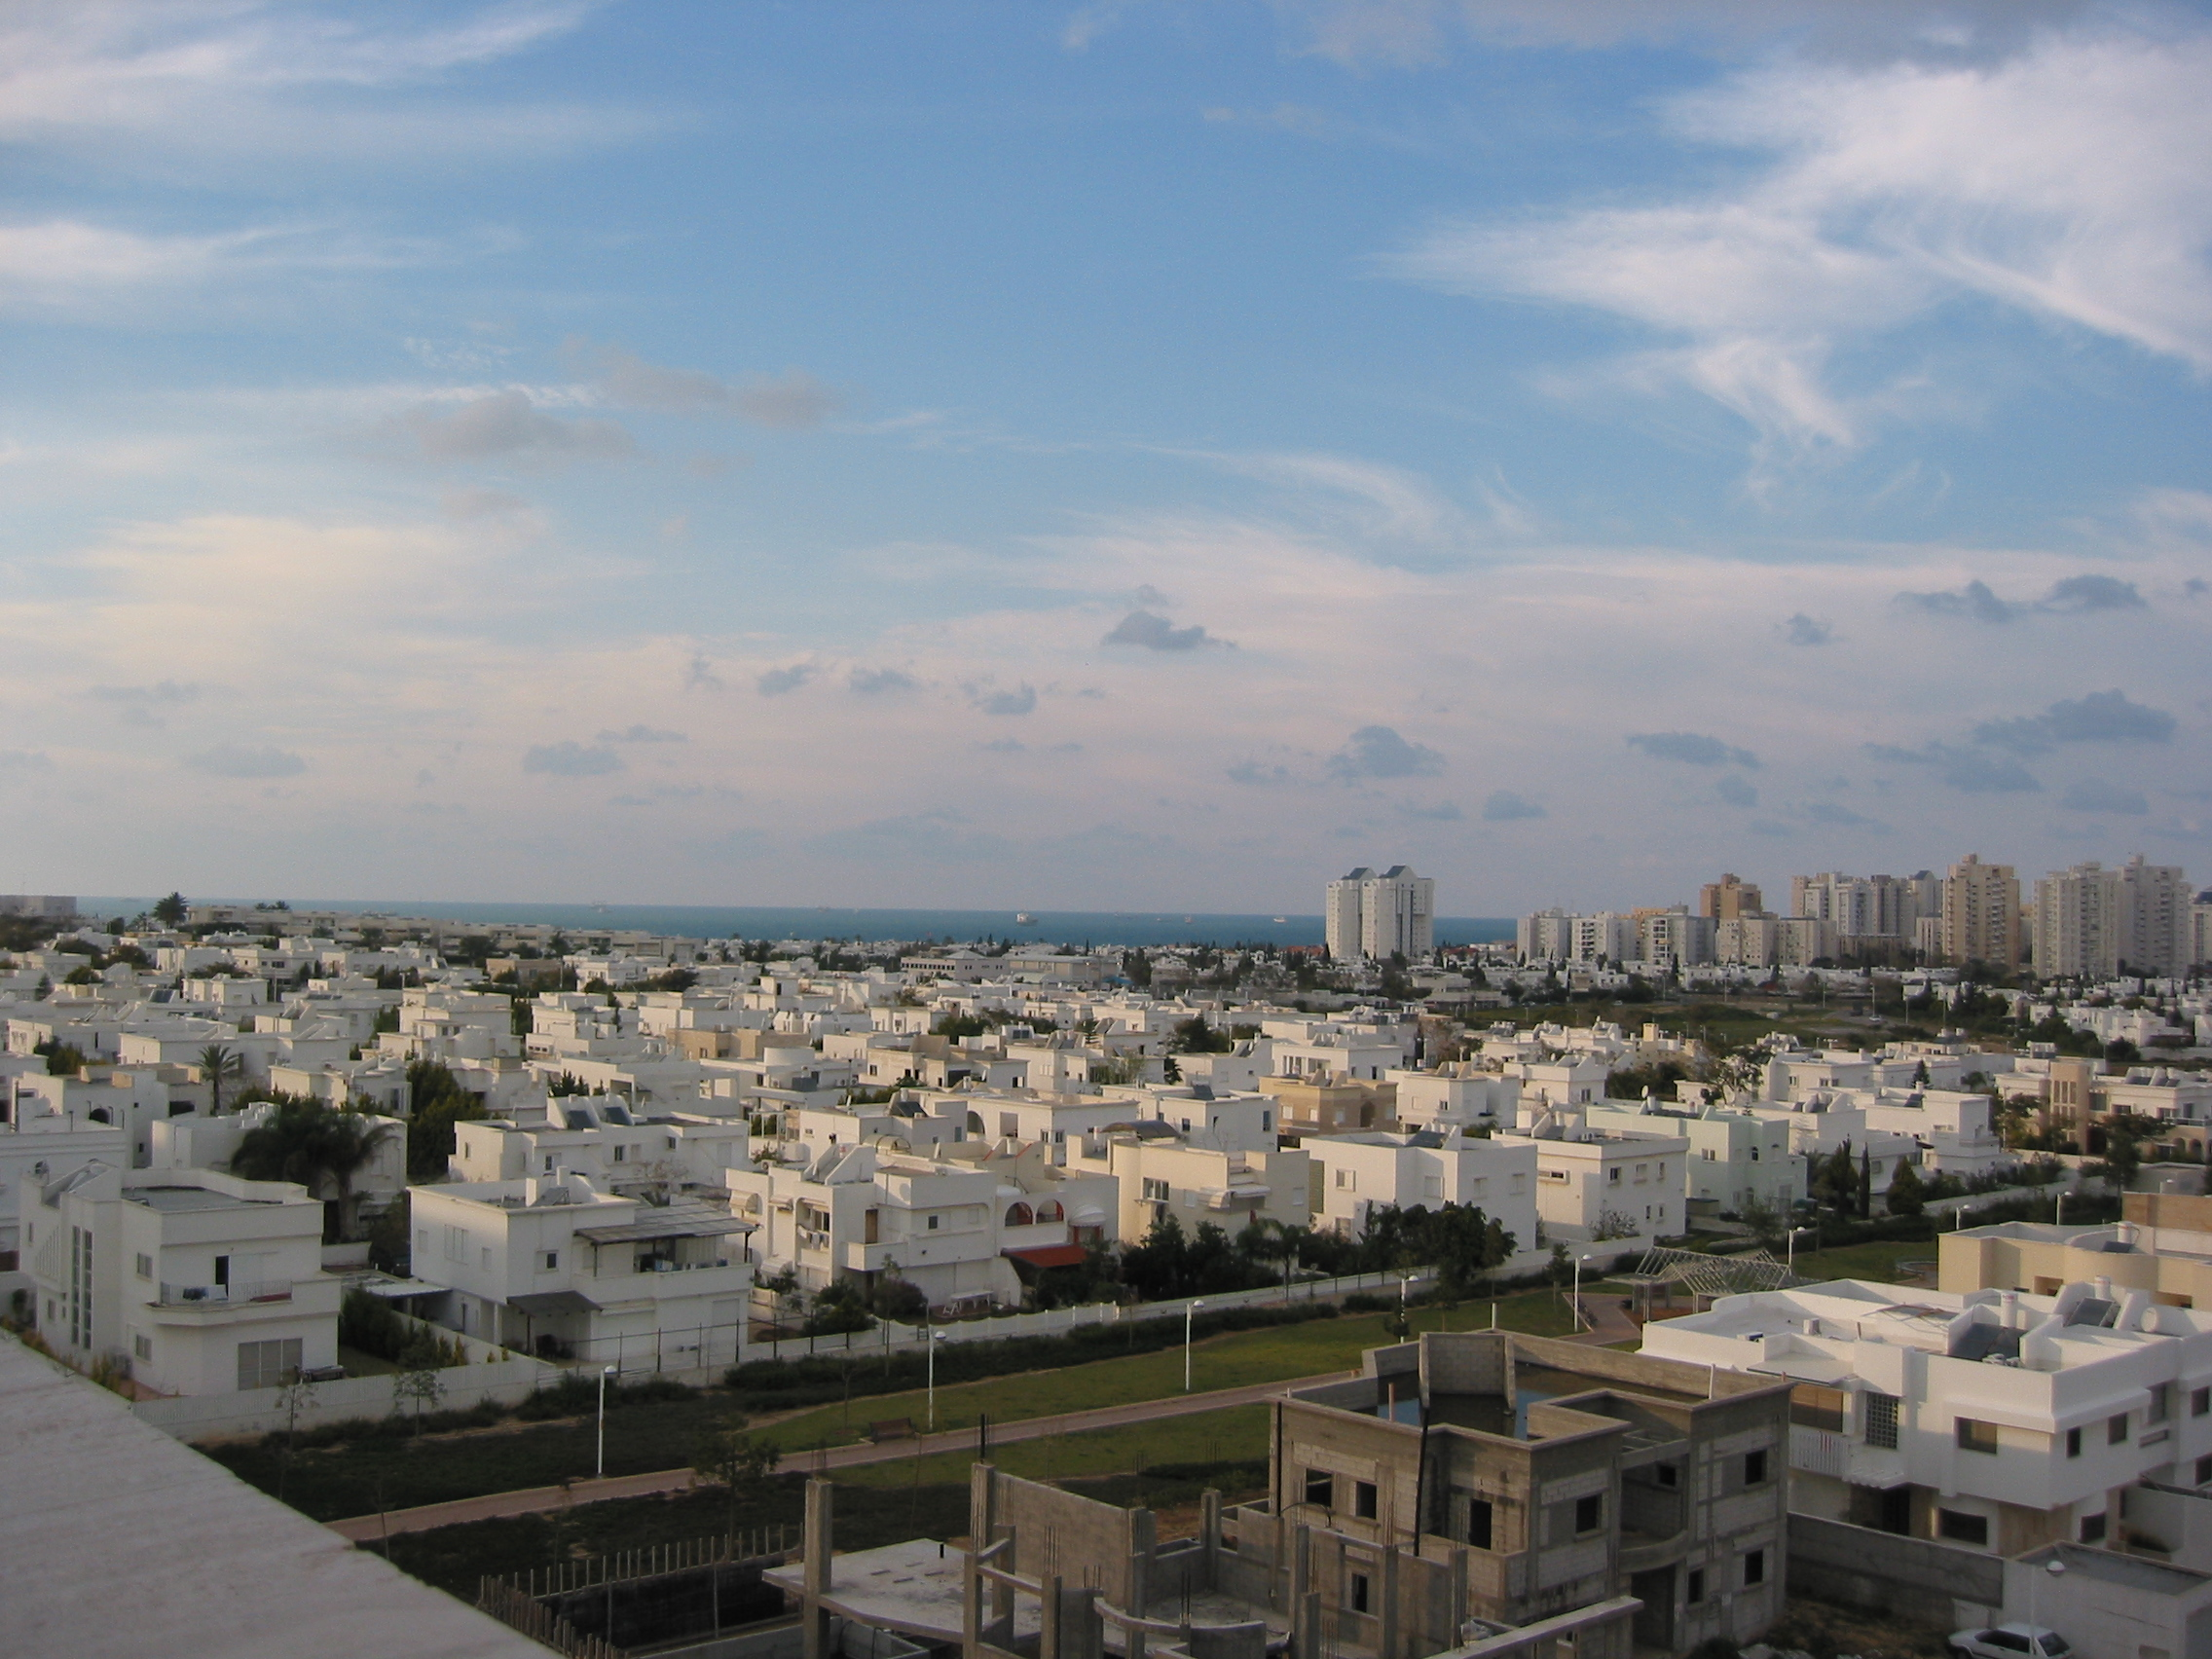 Ashdod Israel  city photo : Original file ‎ 2,272 × 1,704 pixels, file size: 1.47 MB, MIME ...